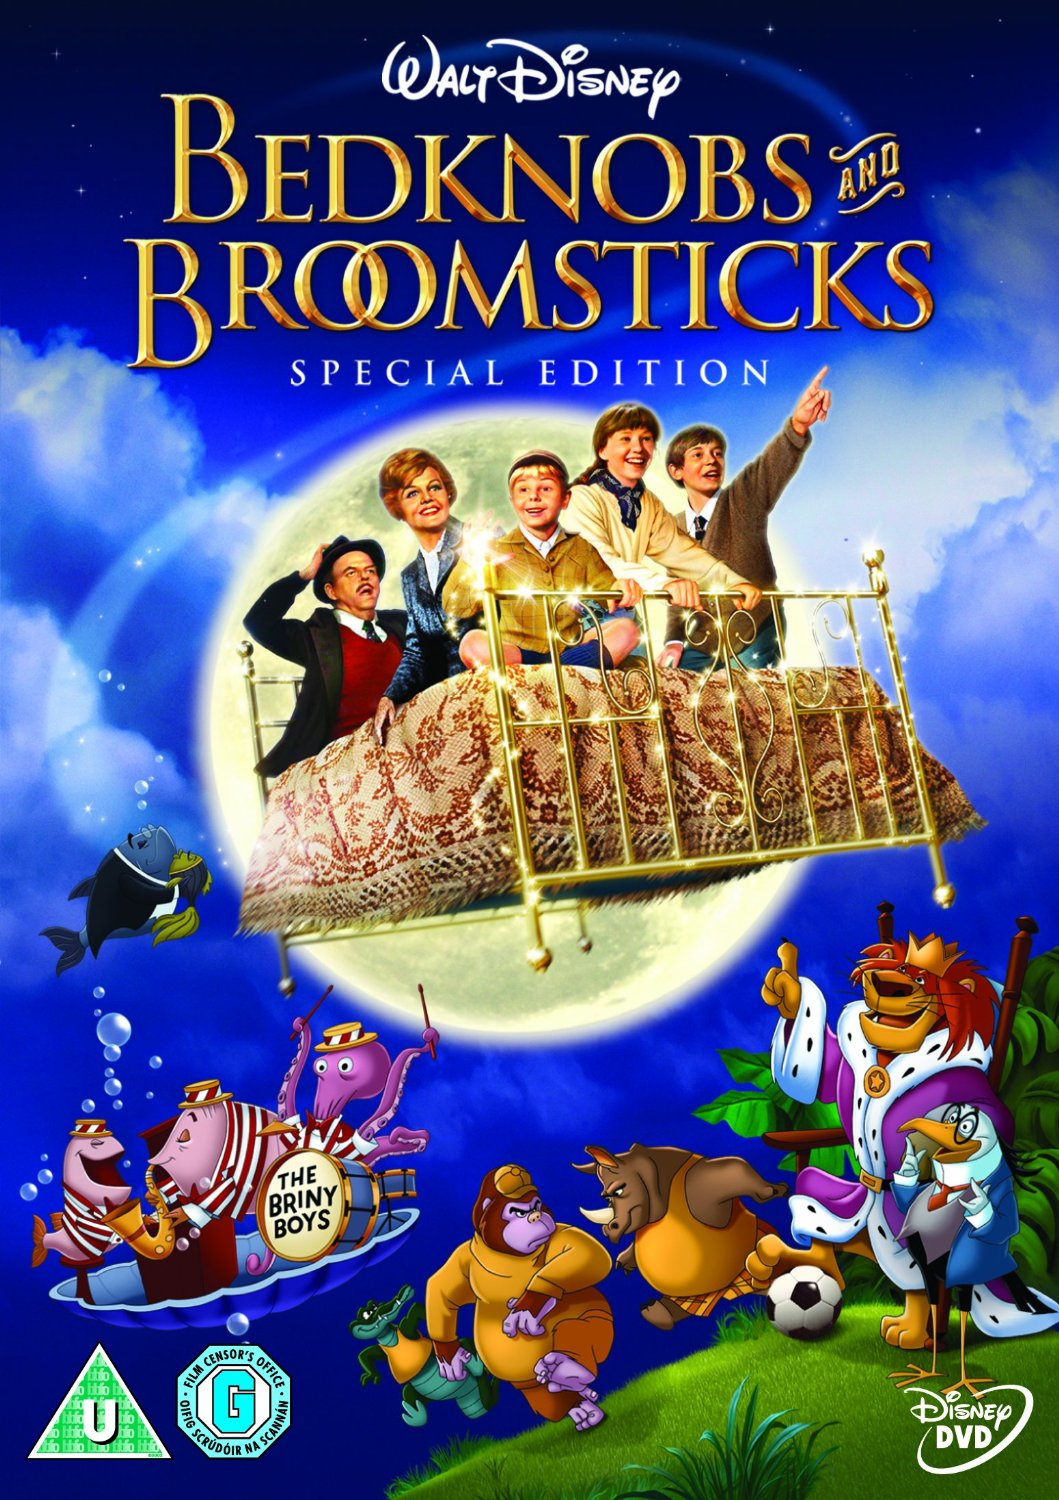 Buy Bedknobs and Broomsticks